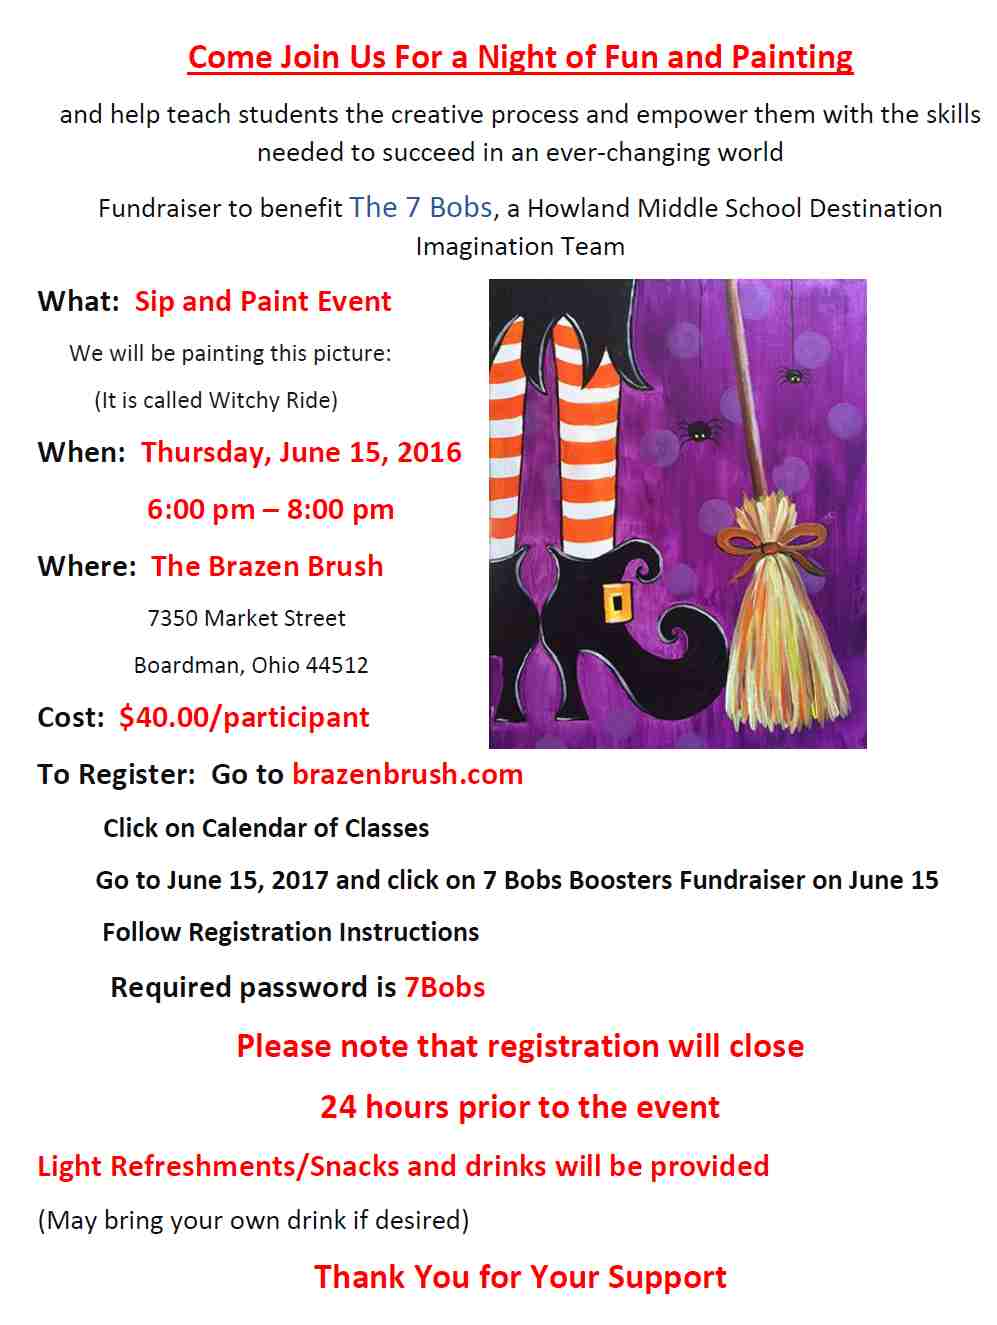 Come Join Us For a Night of Fun and Painting and help teach students the creative process and empower them with the skills needed to succeed in an ever-changing world Fundraiser to benefit The 7 Bobs, a Howland Middle School Destination Imagination Team What: Sip and Paint Event We will be painting this picture: (It is called Witchy Ride) When: Thursday, June 15, 2016 6:00 pm – 8:00 pm Where: The Brazen Brush 7350 Market Street Boardman, Ohio 44512 Cost: $40.00/participant To Register: Go to brazenbrush.com Click on Calendar of Classes Go to June 15, 2017 and click on 7 Bobs Boosters Fundraiser on June 15 Follow Registration Instructions Required password is 7Bobs Please note that registration will close 24 hours prior to the event Light Refreshments/Snacks and drinks will be provided (May bring your own drink if desired) Thank You for Your Support